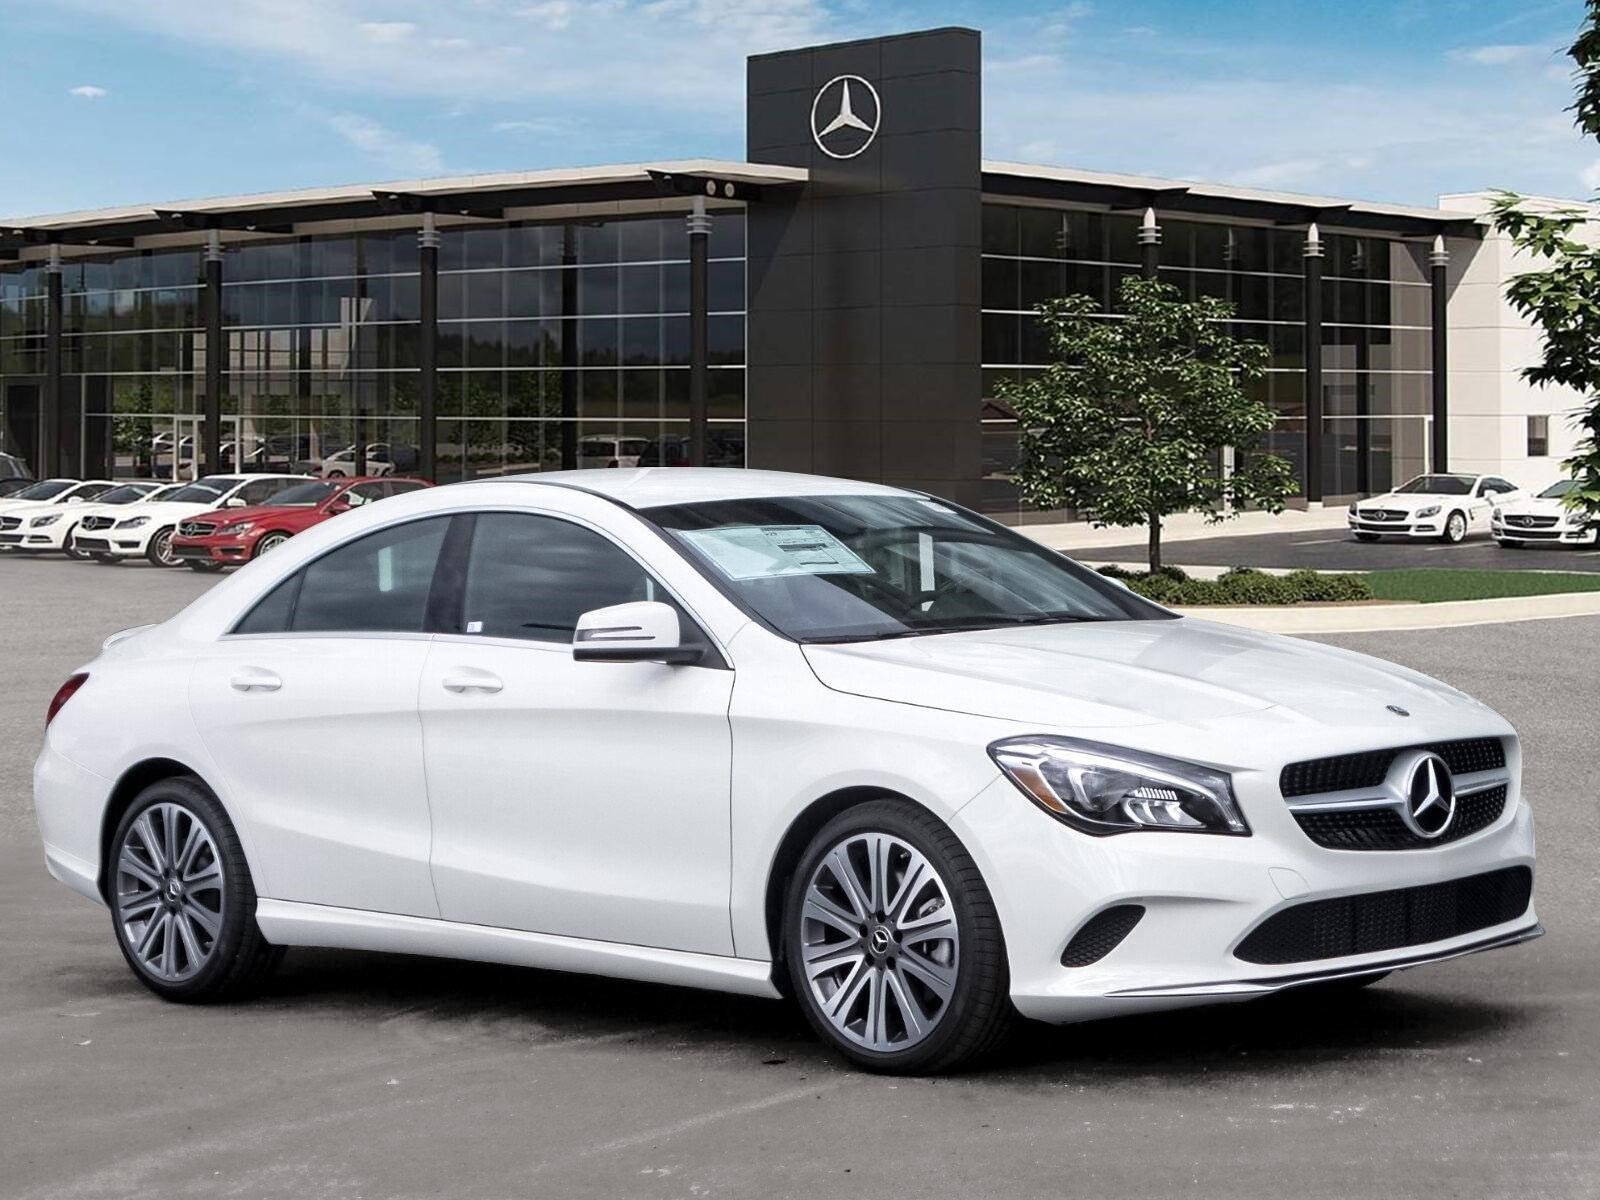 New 2018 mercedes benz cla cla 250 coupe in ridgeland for Mercedes benz cla 250 msrp